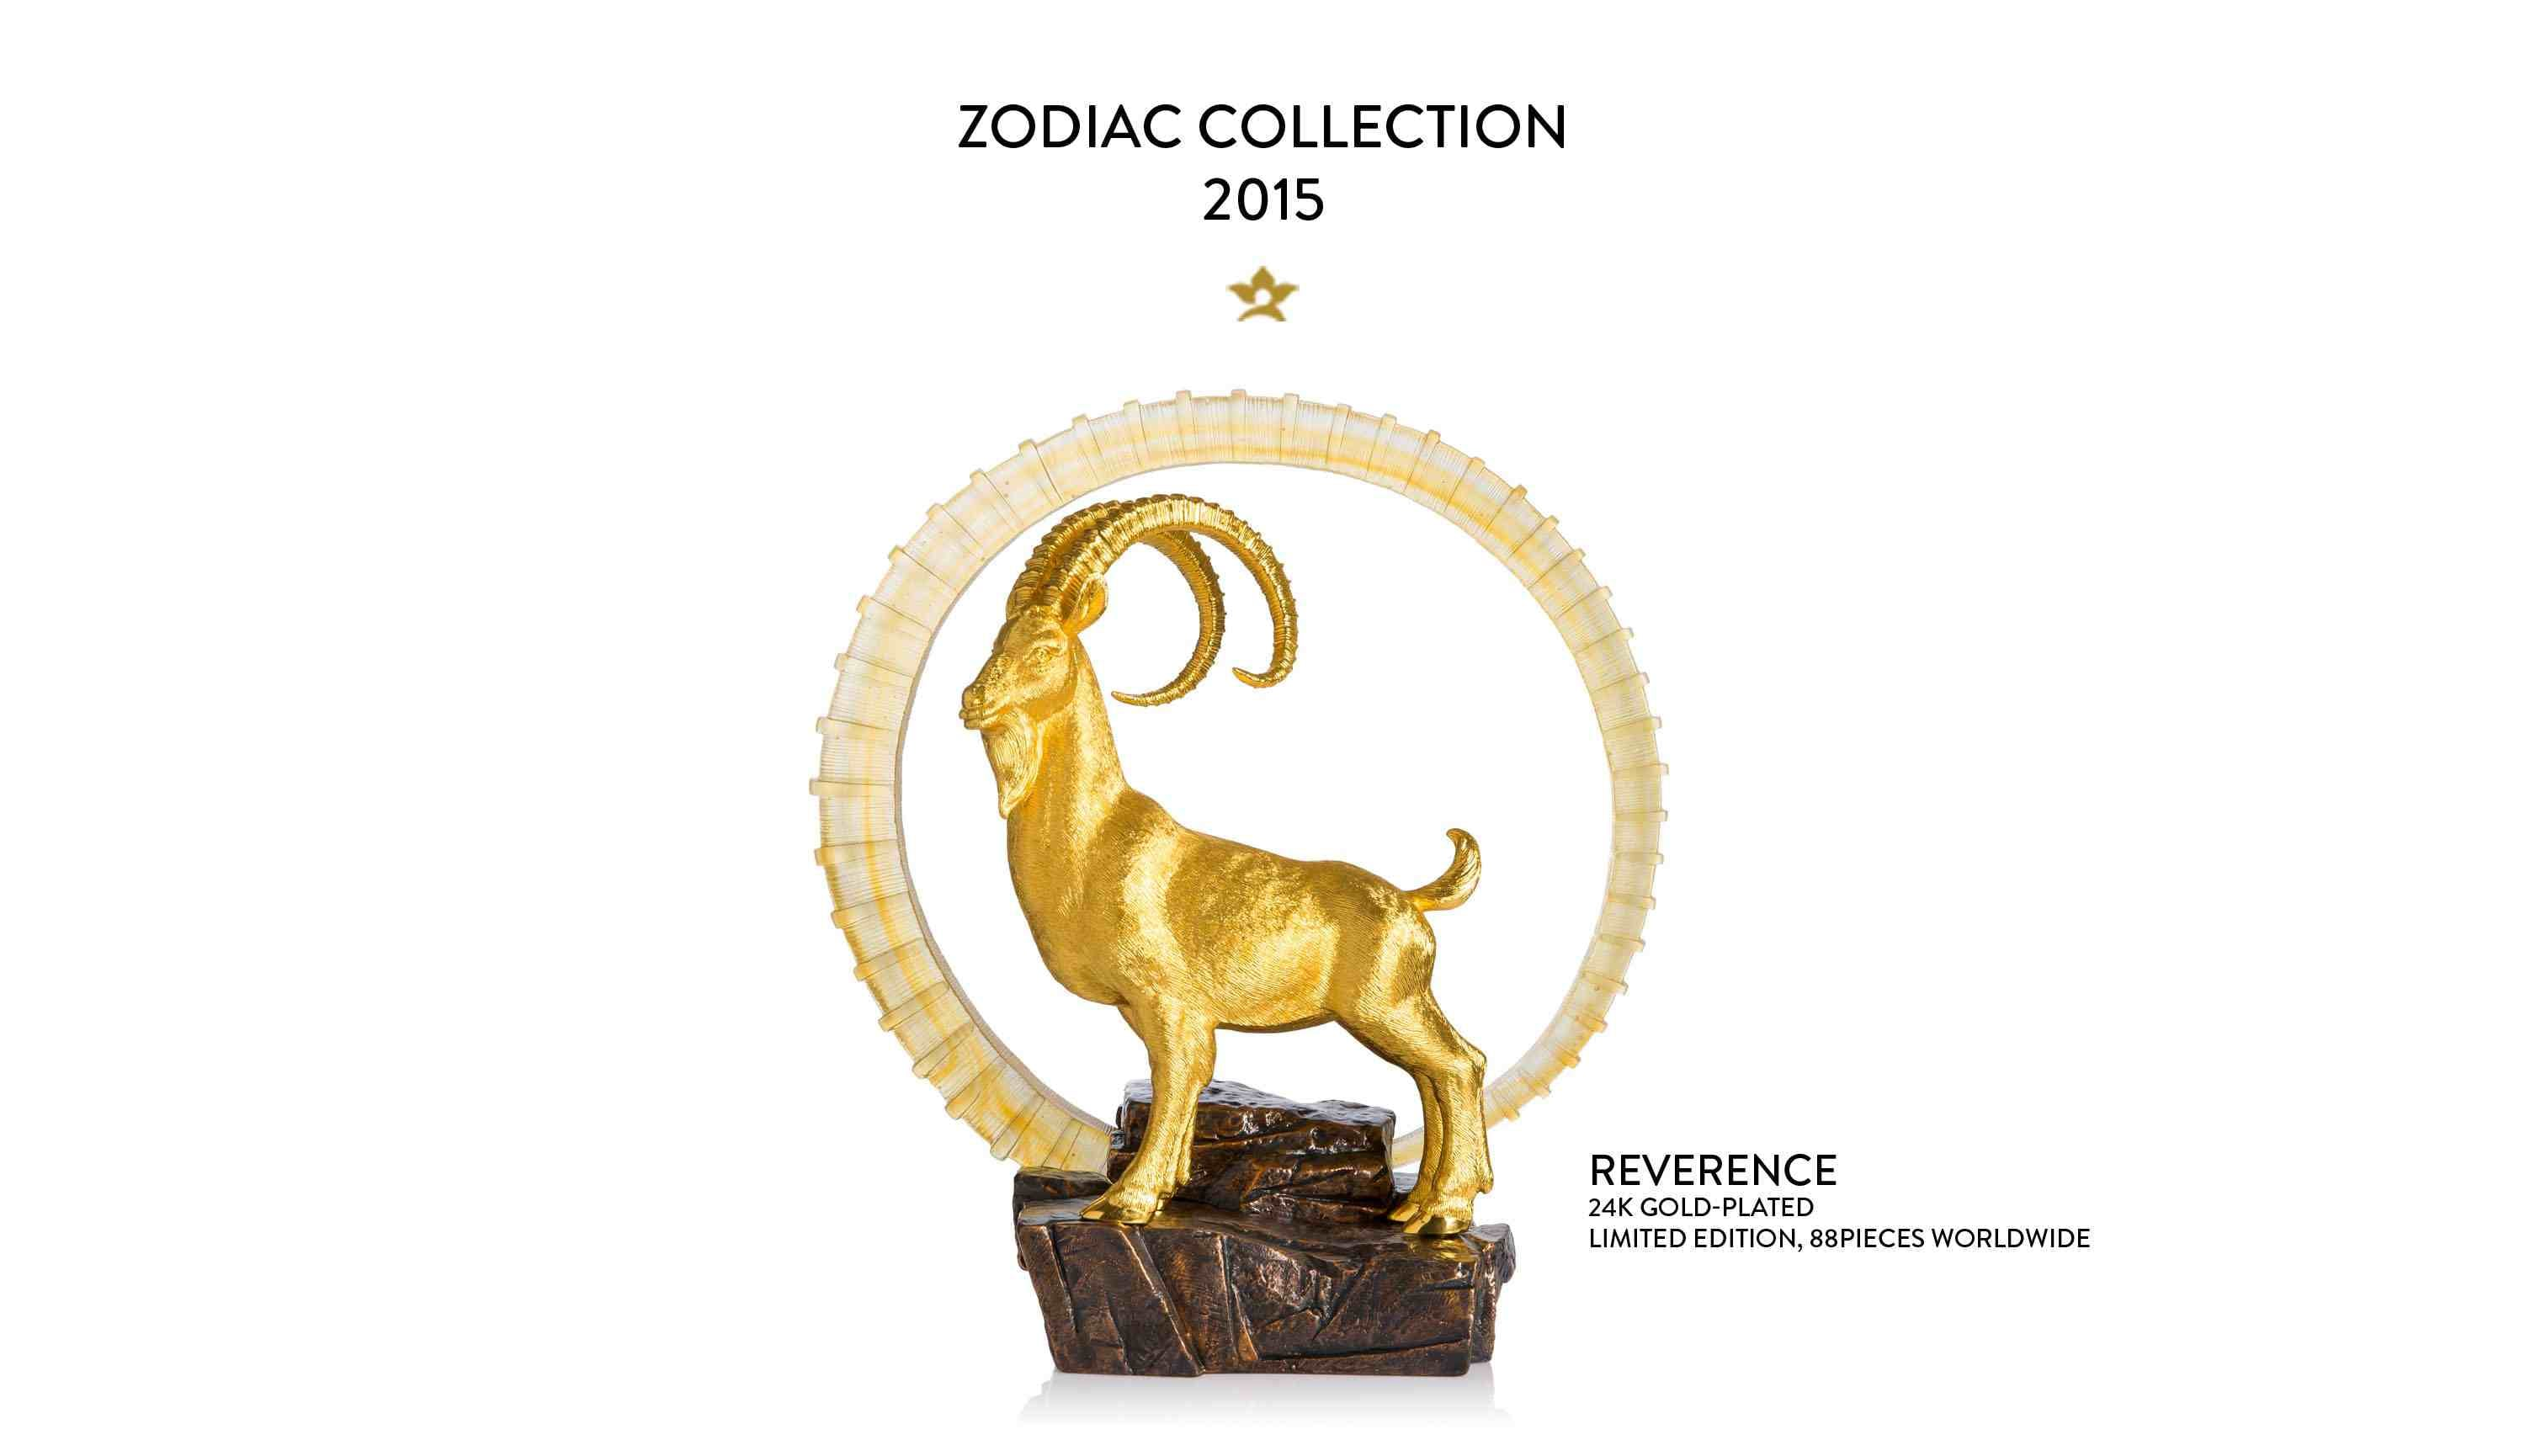 Zodiac Collection 2015